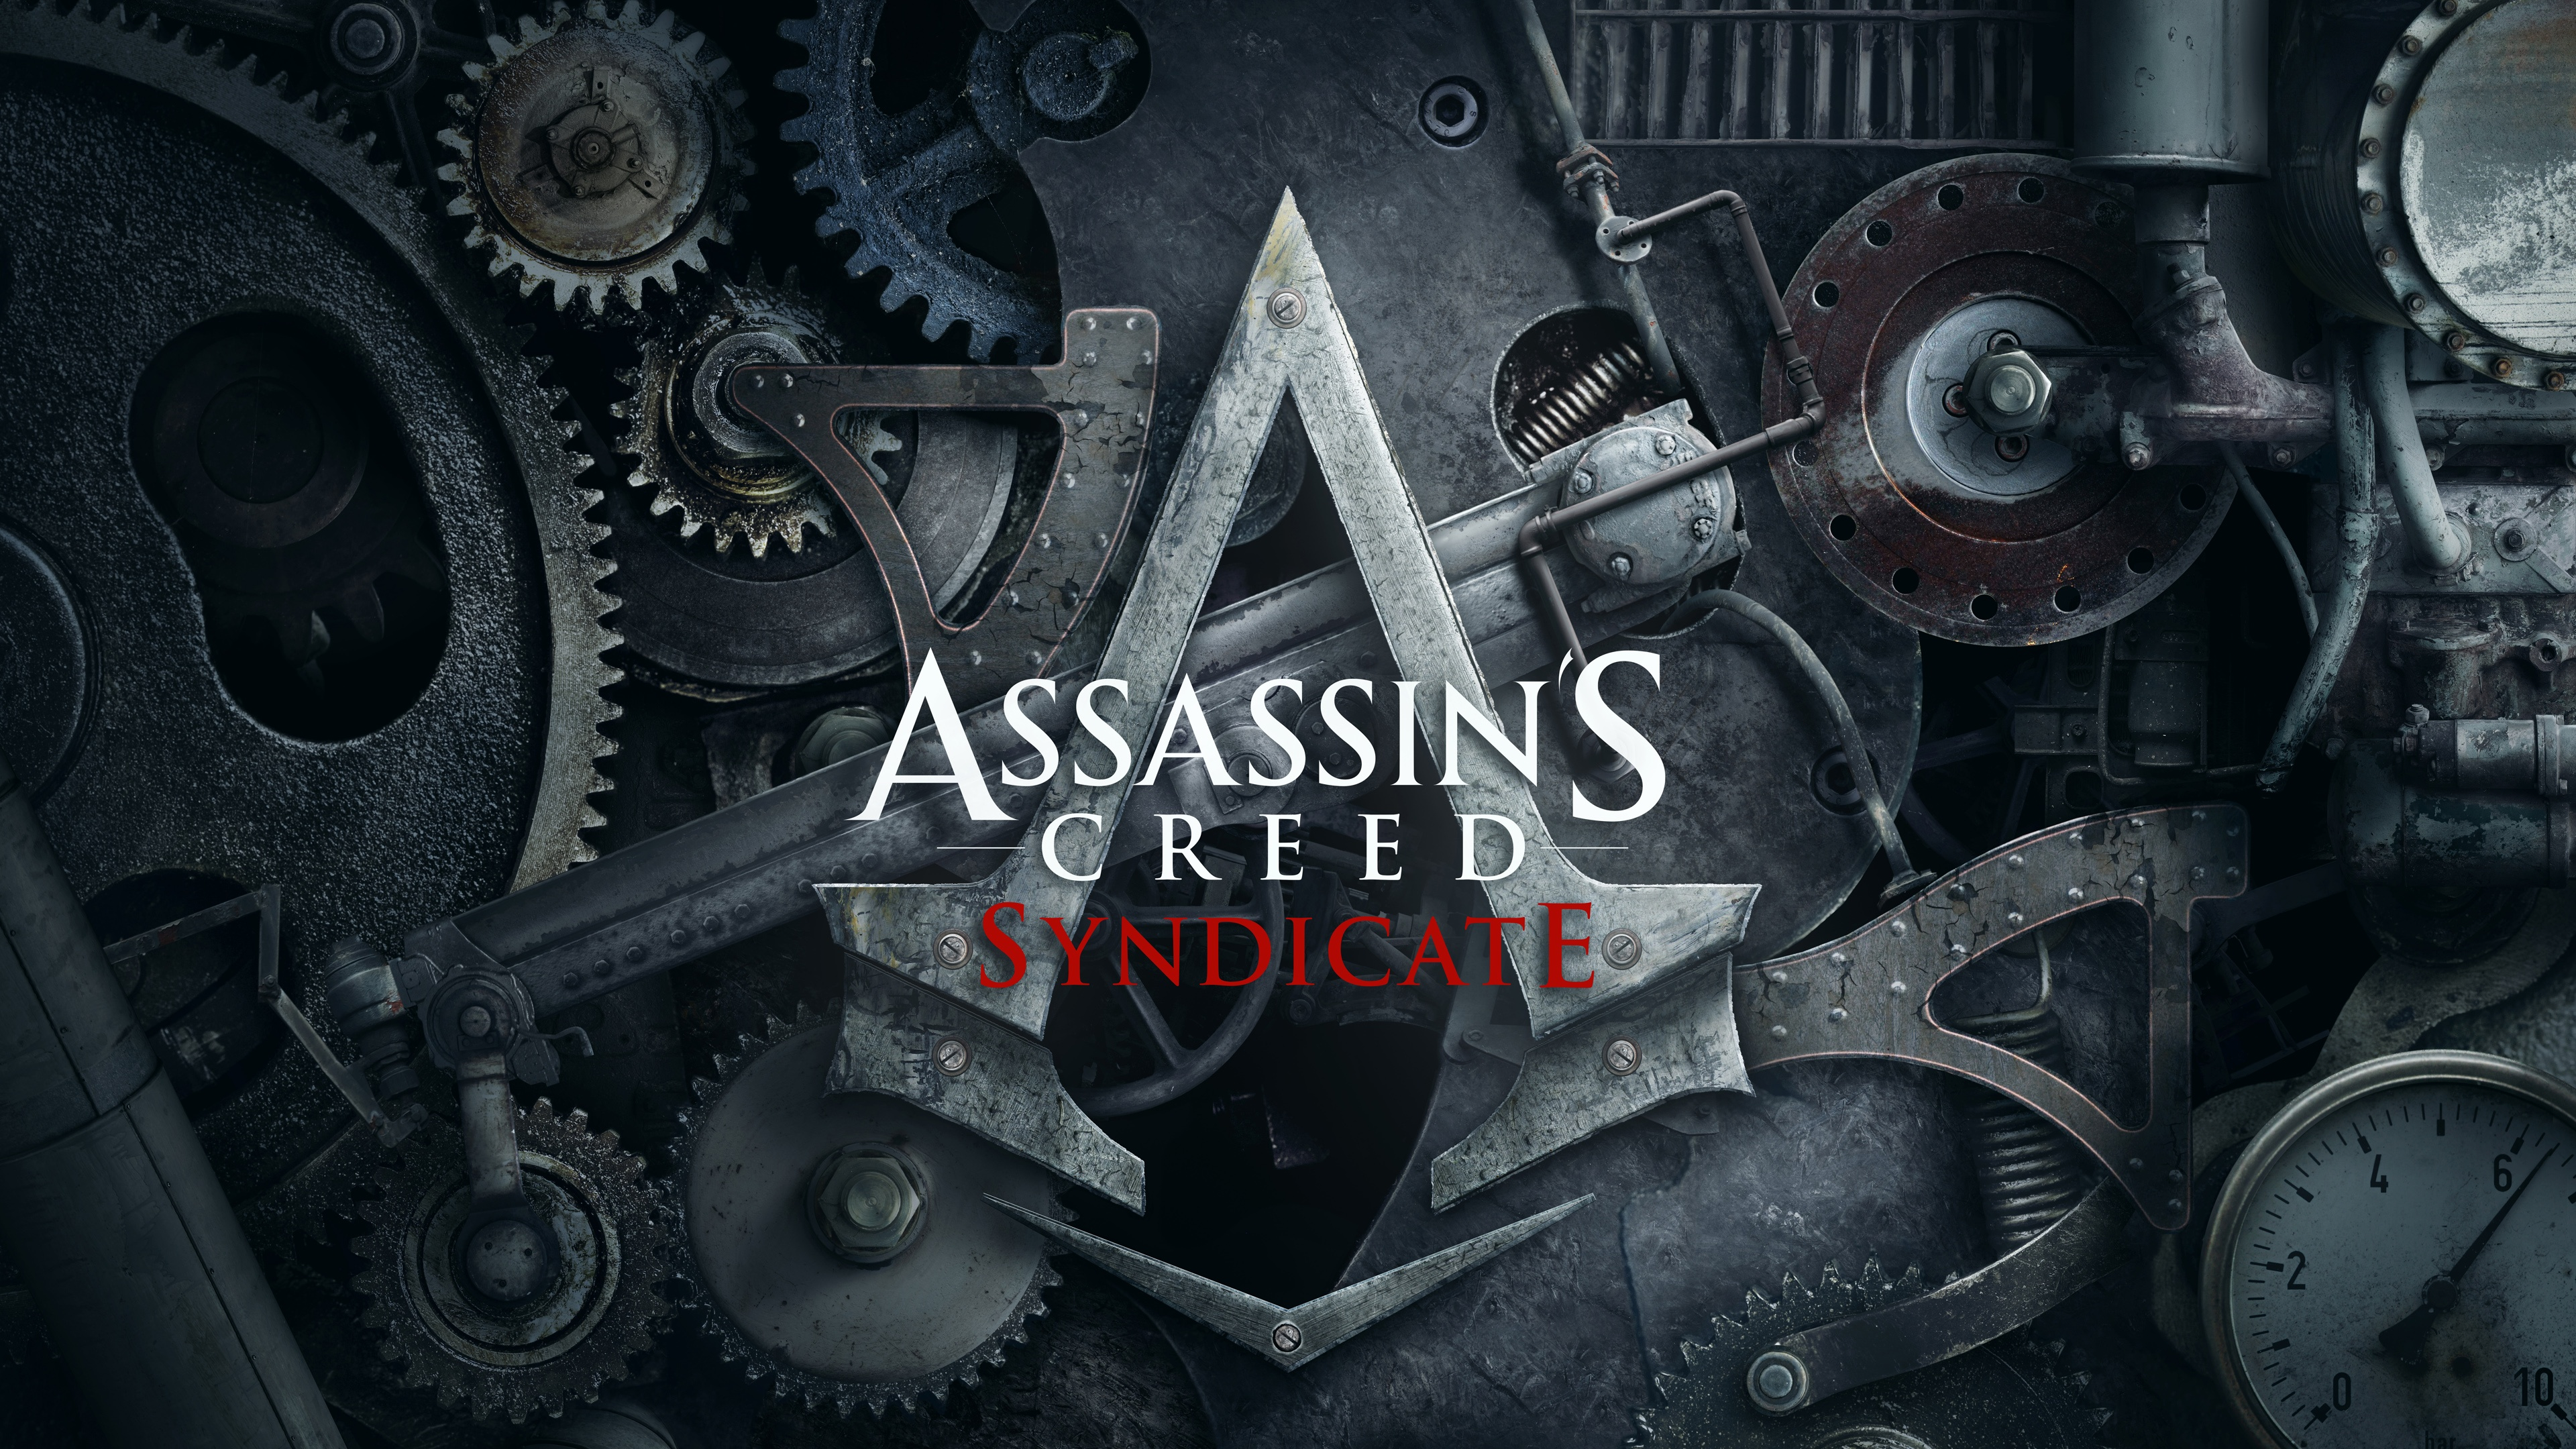 Ubuntu Animated Wallpaper Assassin S Creed Syndicate Logo Wallpapers In Jpg Format